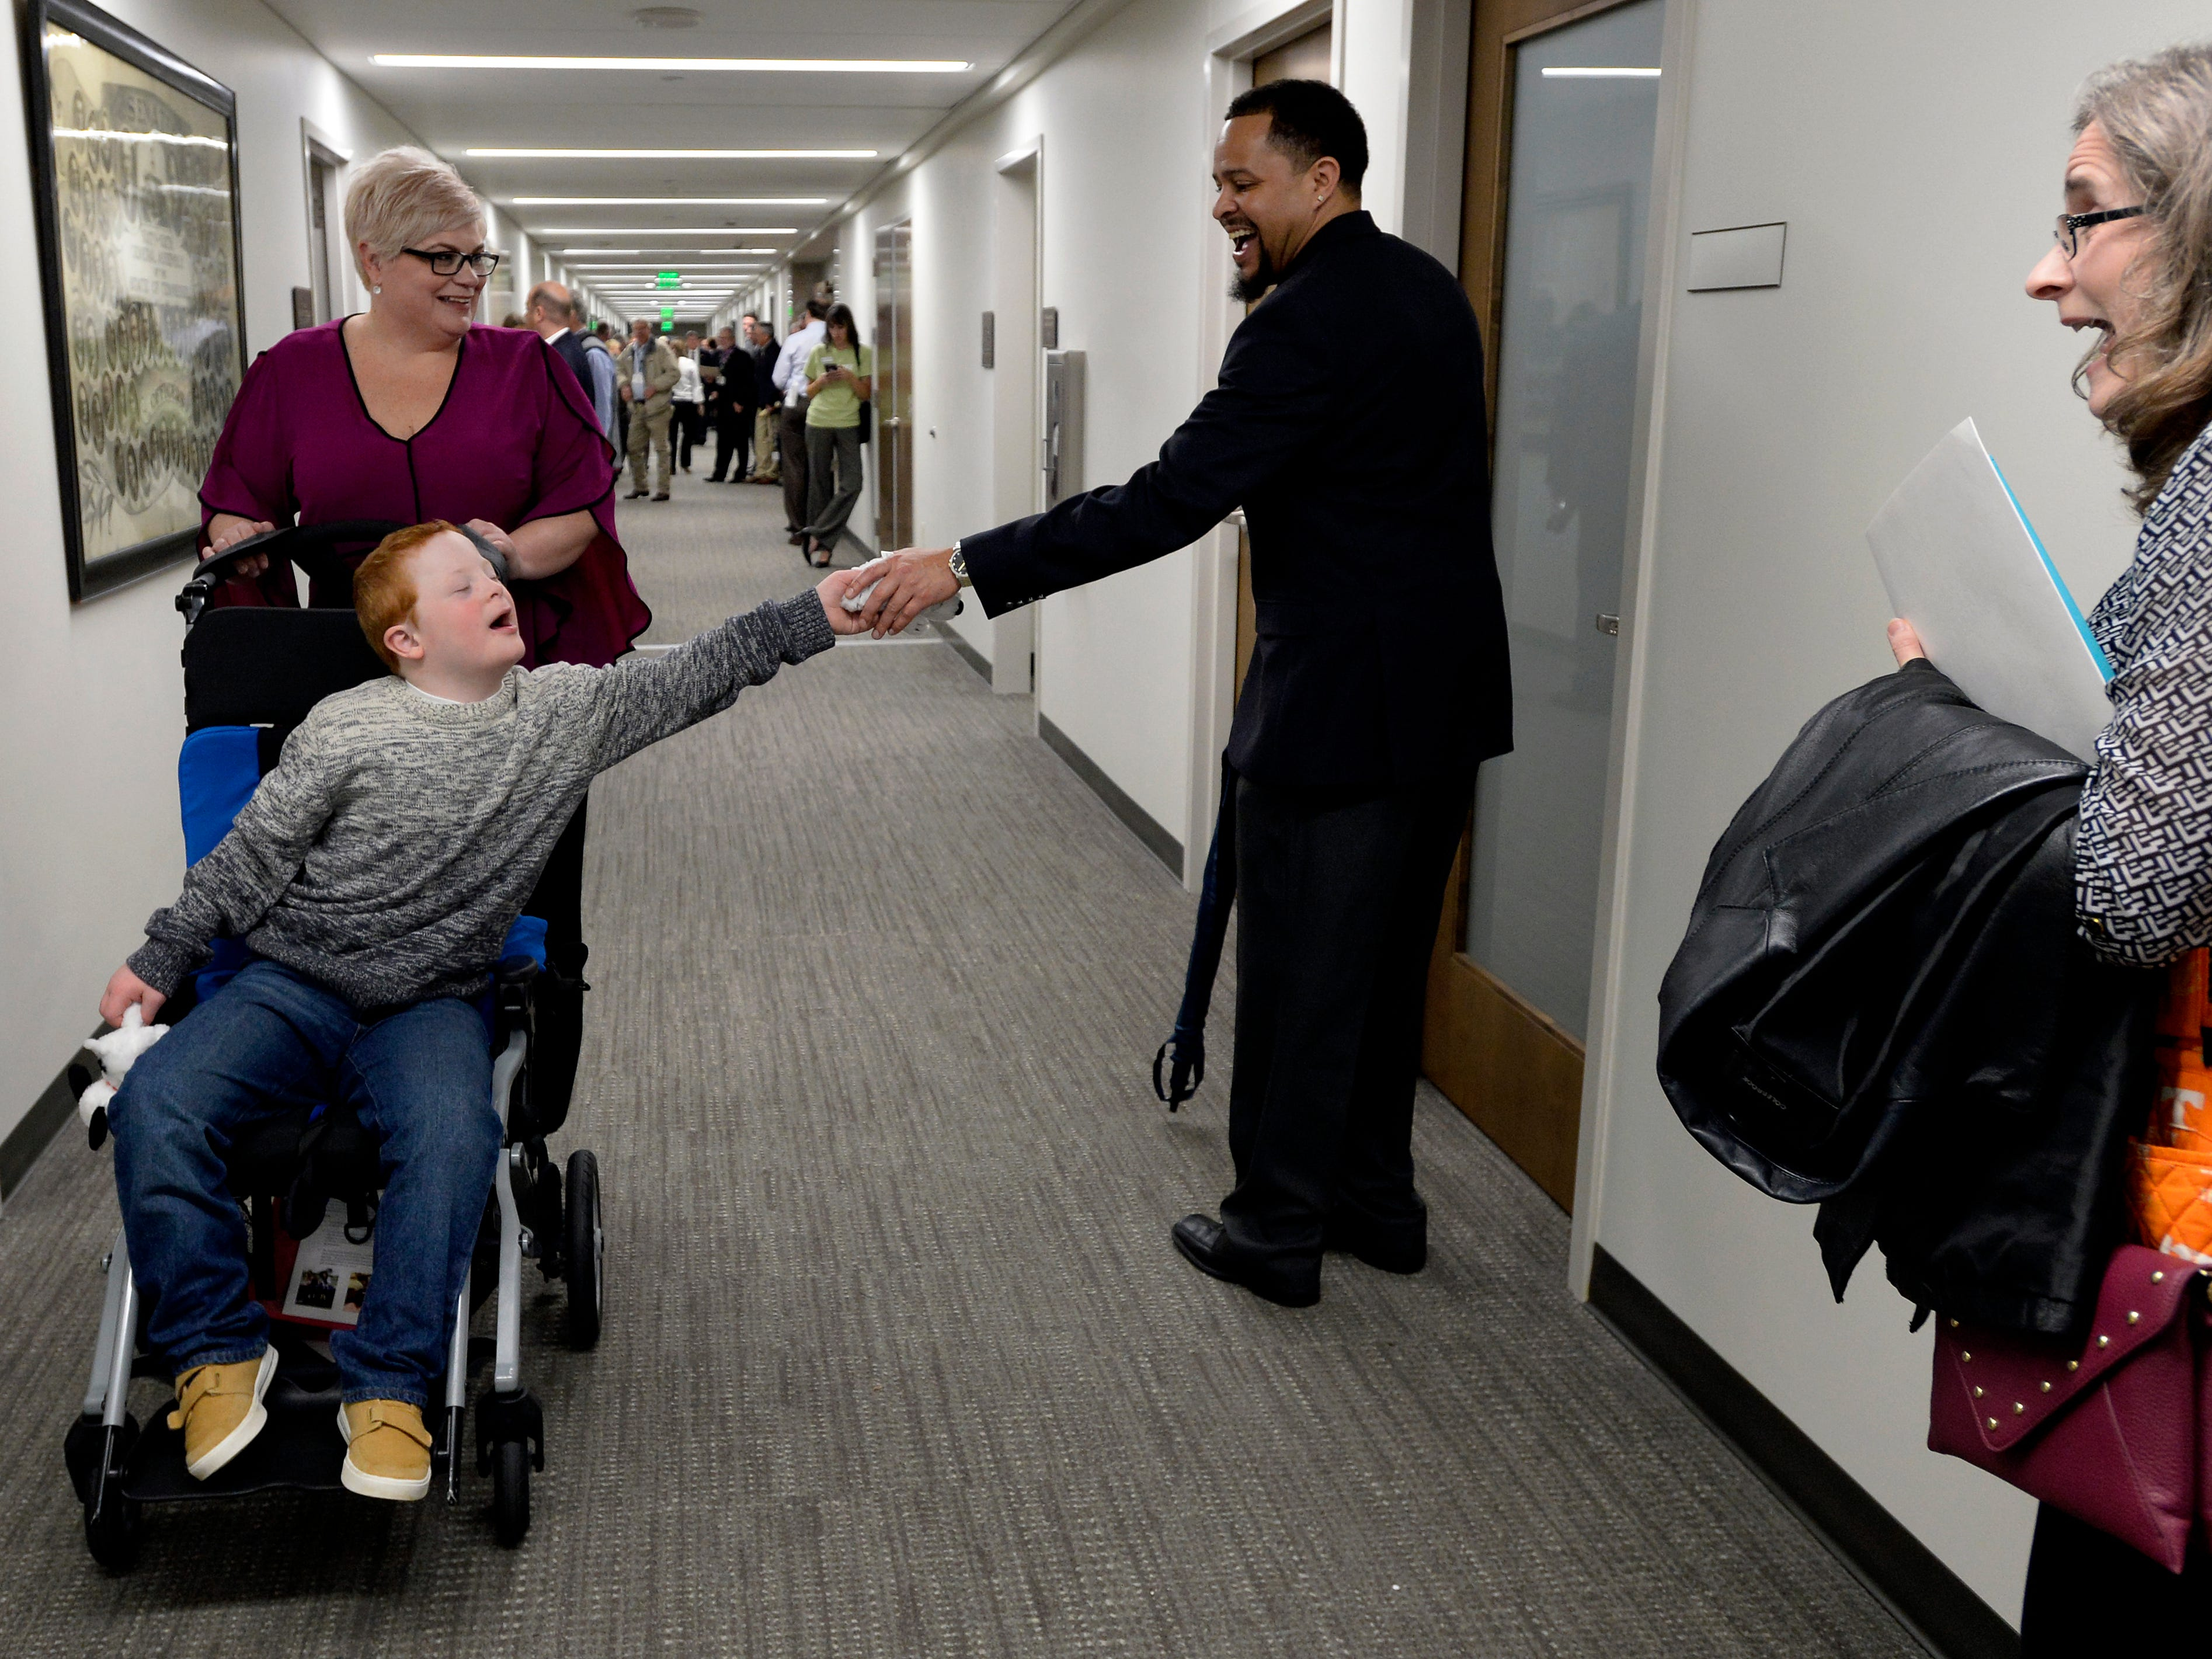 Hatcher Ryan, 10, who has Down Syndrome, shakes hands with people in the hallway of the Cordell Hull building as his mother Jennifer Schultz follows behind before she visits with Tennessee State Senate Majority Leader Jack Johnson during Disability Day on the Hill Tuesday, Feb. 12, 2019, in Nashville, Tenn. Families and advocates of people with disabilities in Tennessee met with lawmakers to express concerns and the needs of the disabled in the state.